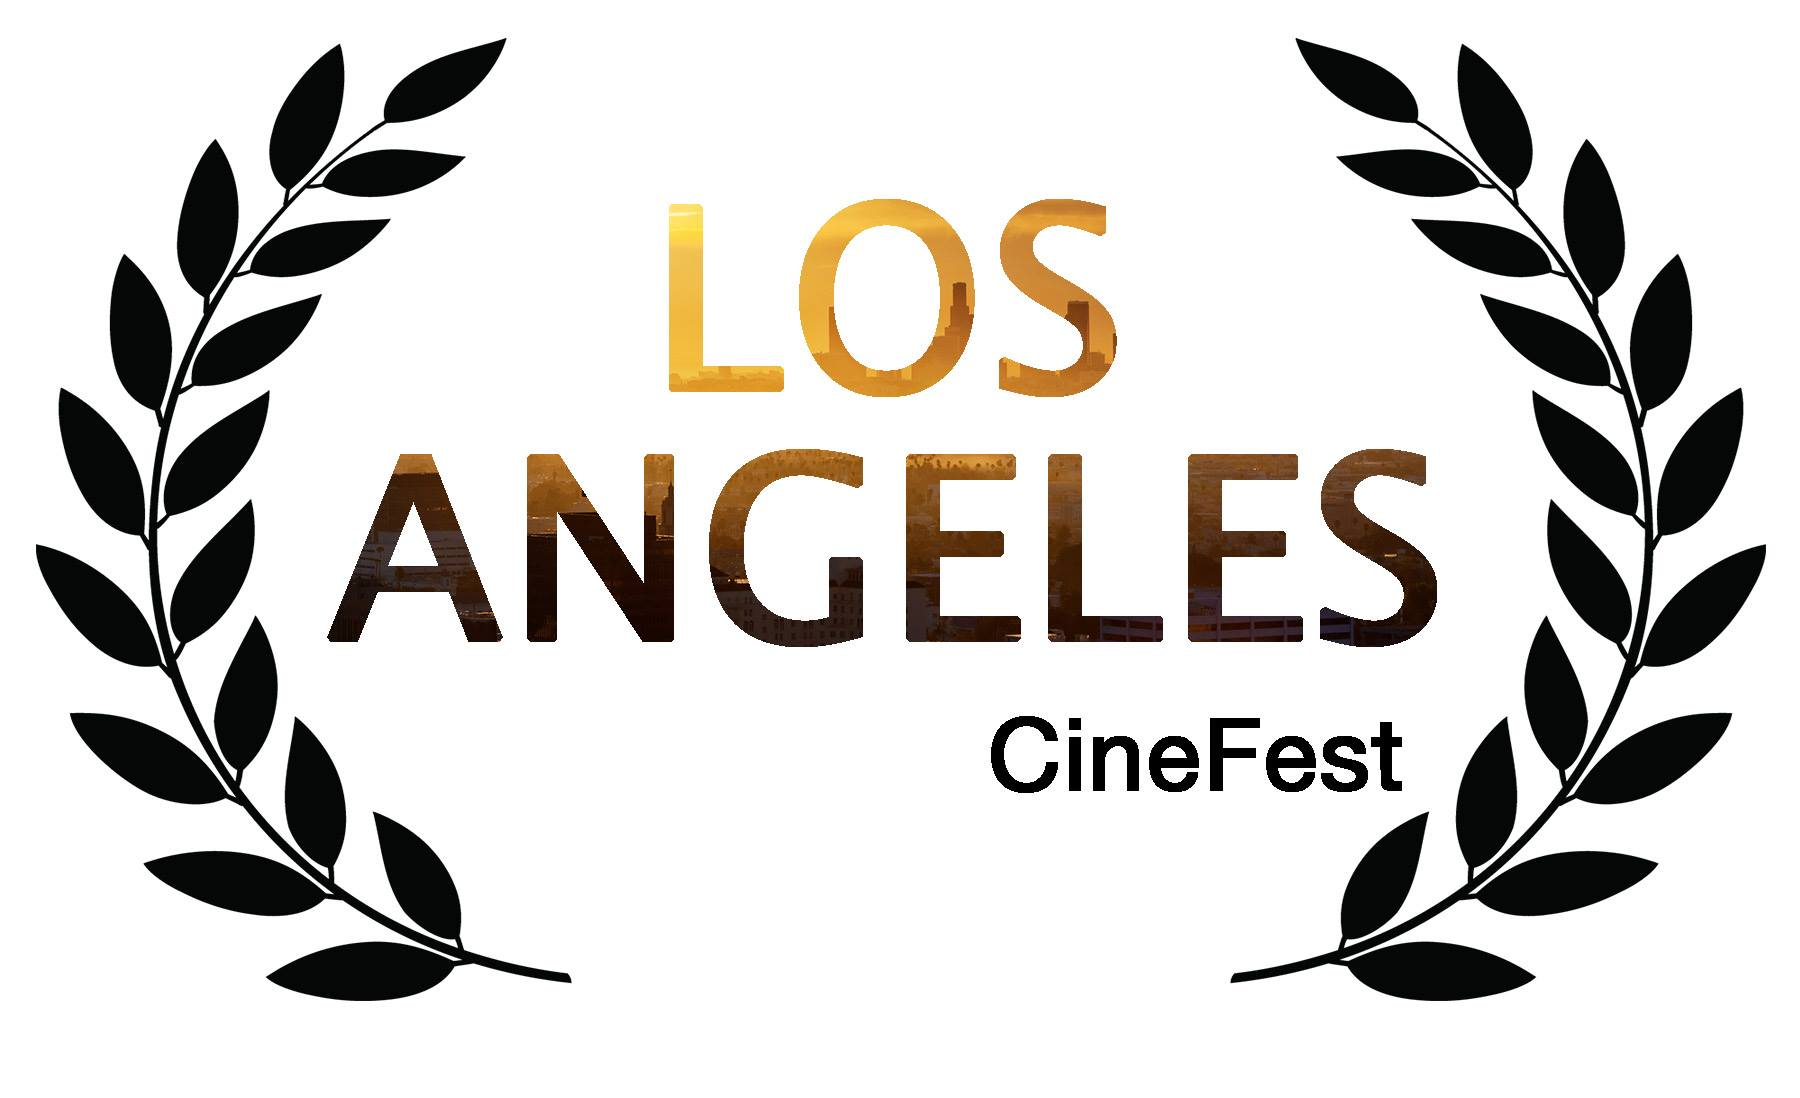 los angeles cinefest